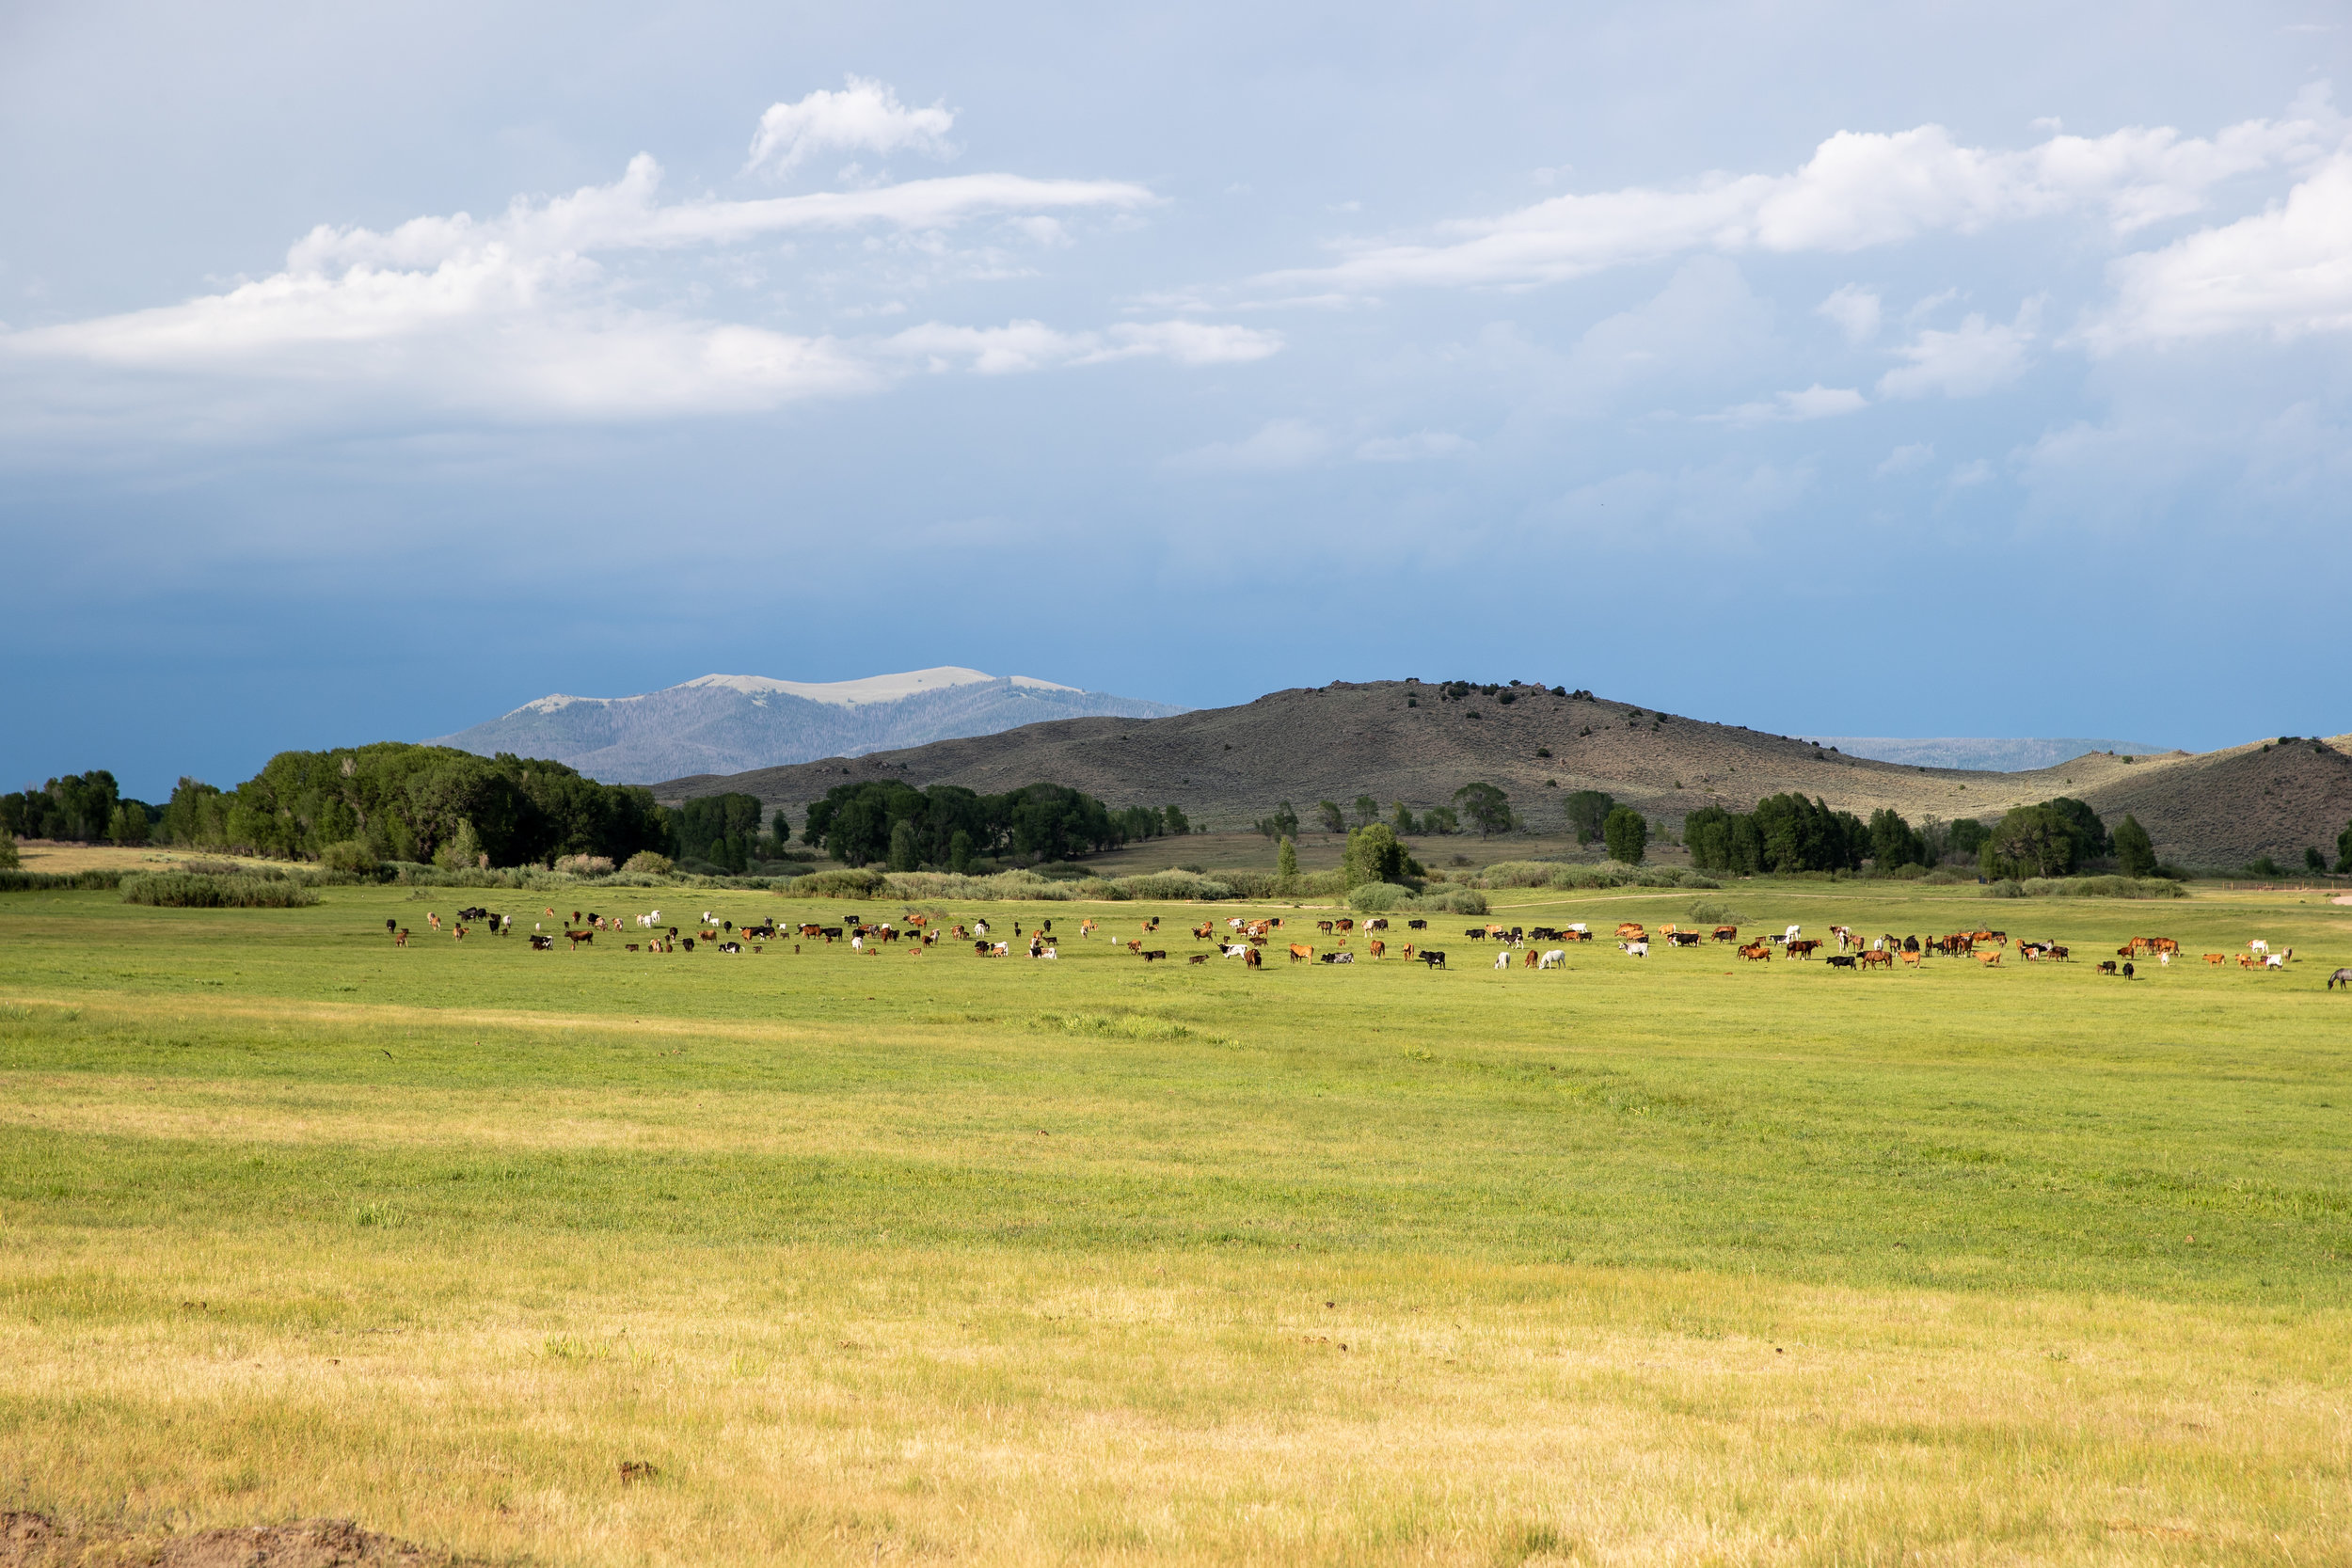 The ranch cattle